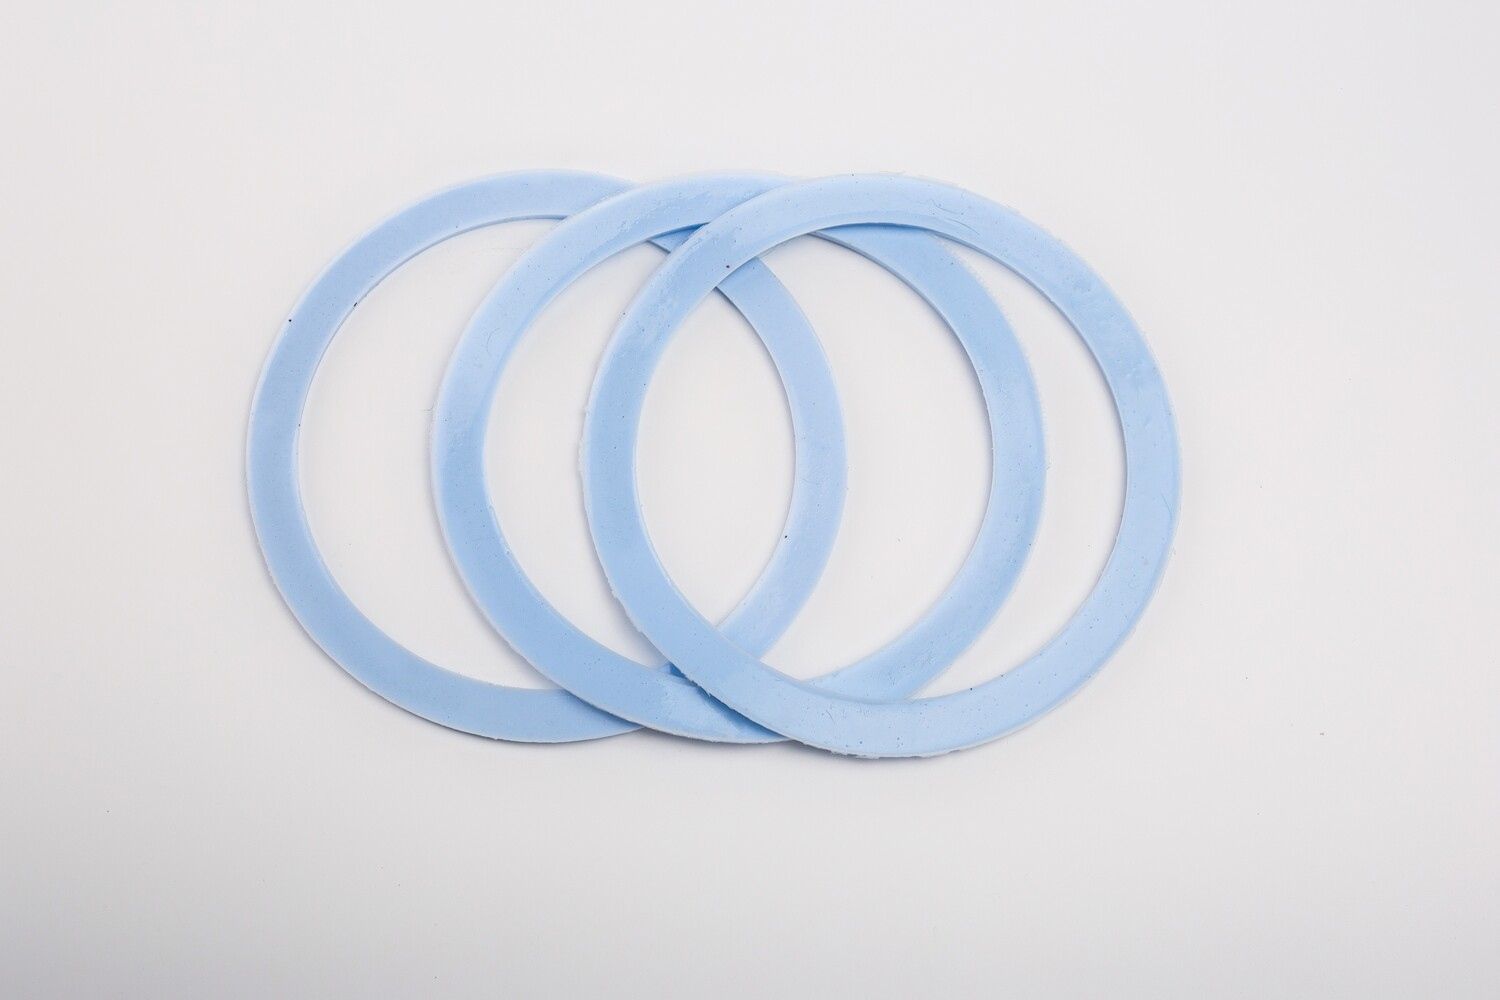 2 x Replacement silicone gaskets for 8.5qt - 15qt Afghan pressure cooker